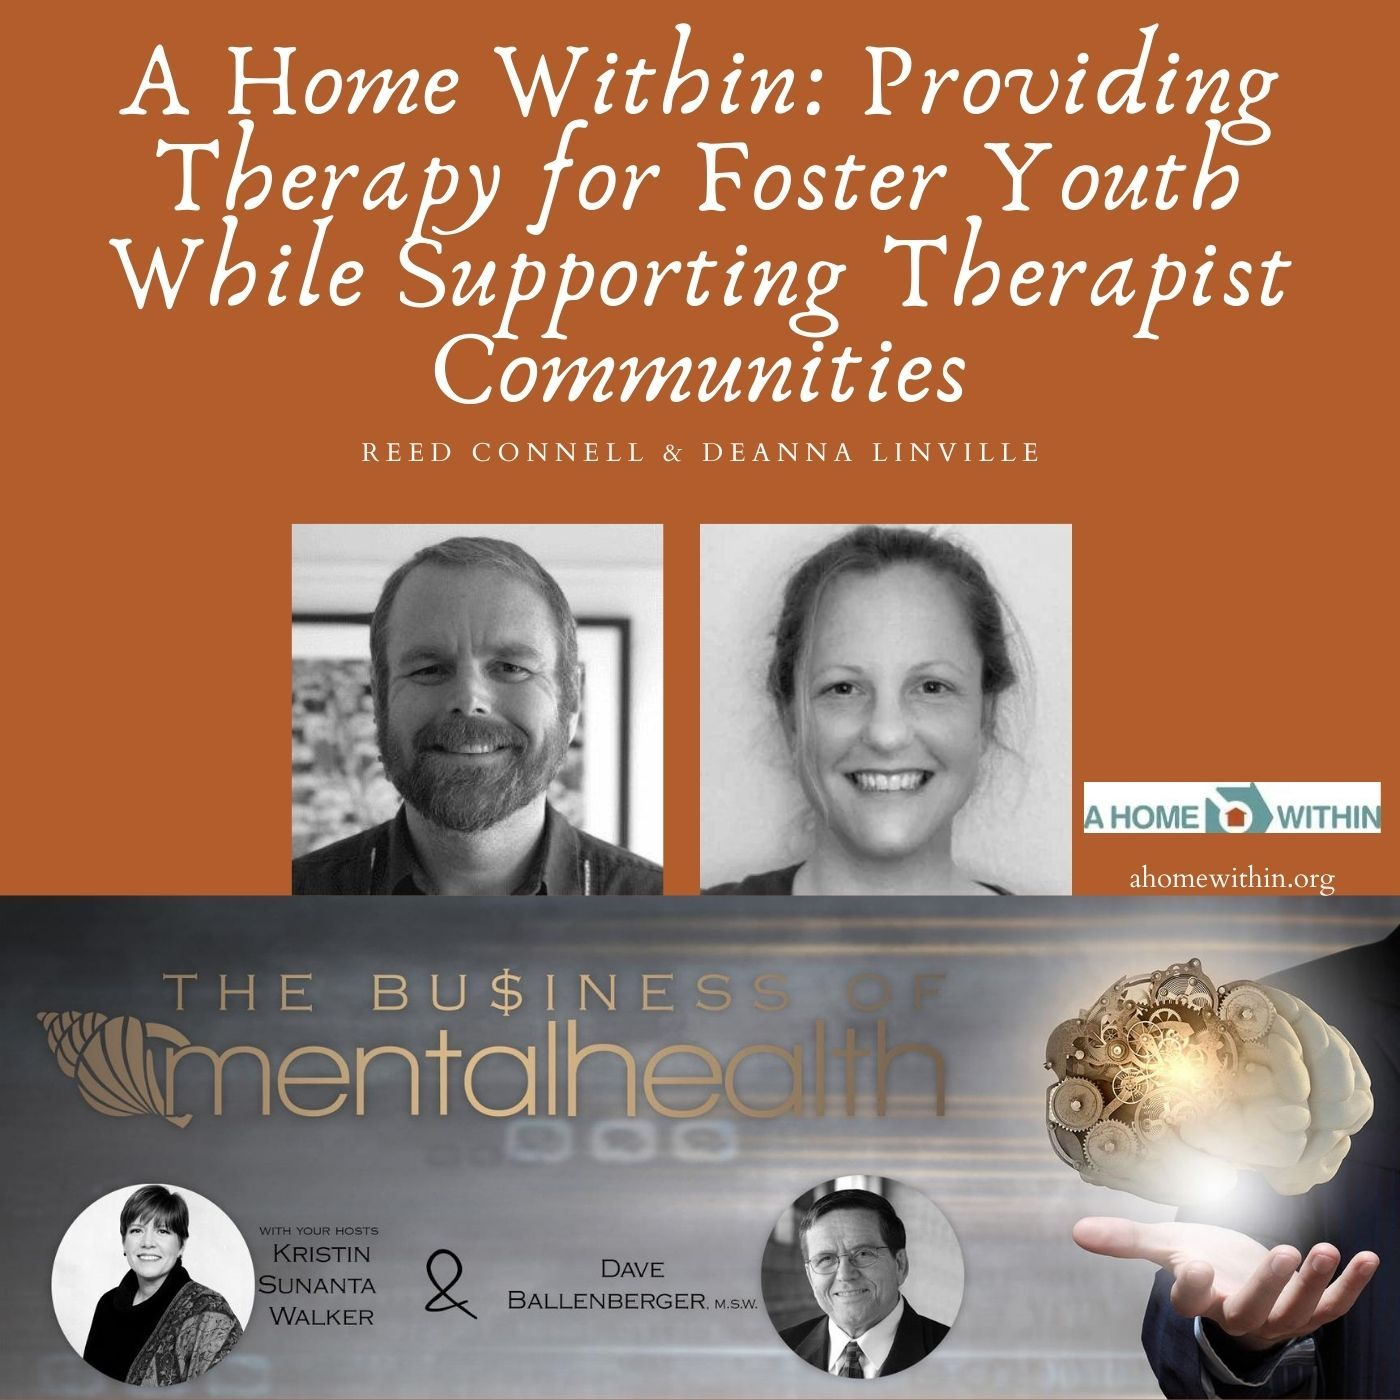 Mental Health News Radio - A Home Within: Providing Therapy for Foster Youth While Supporting Therapist Communities